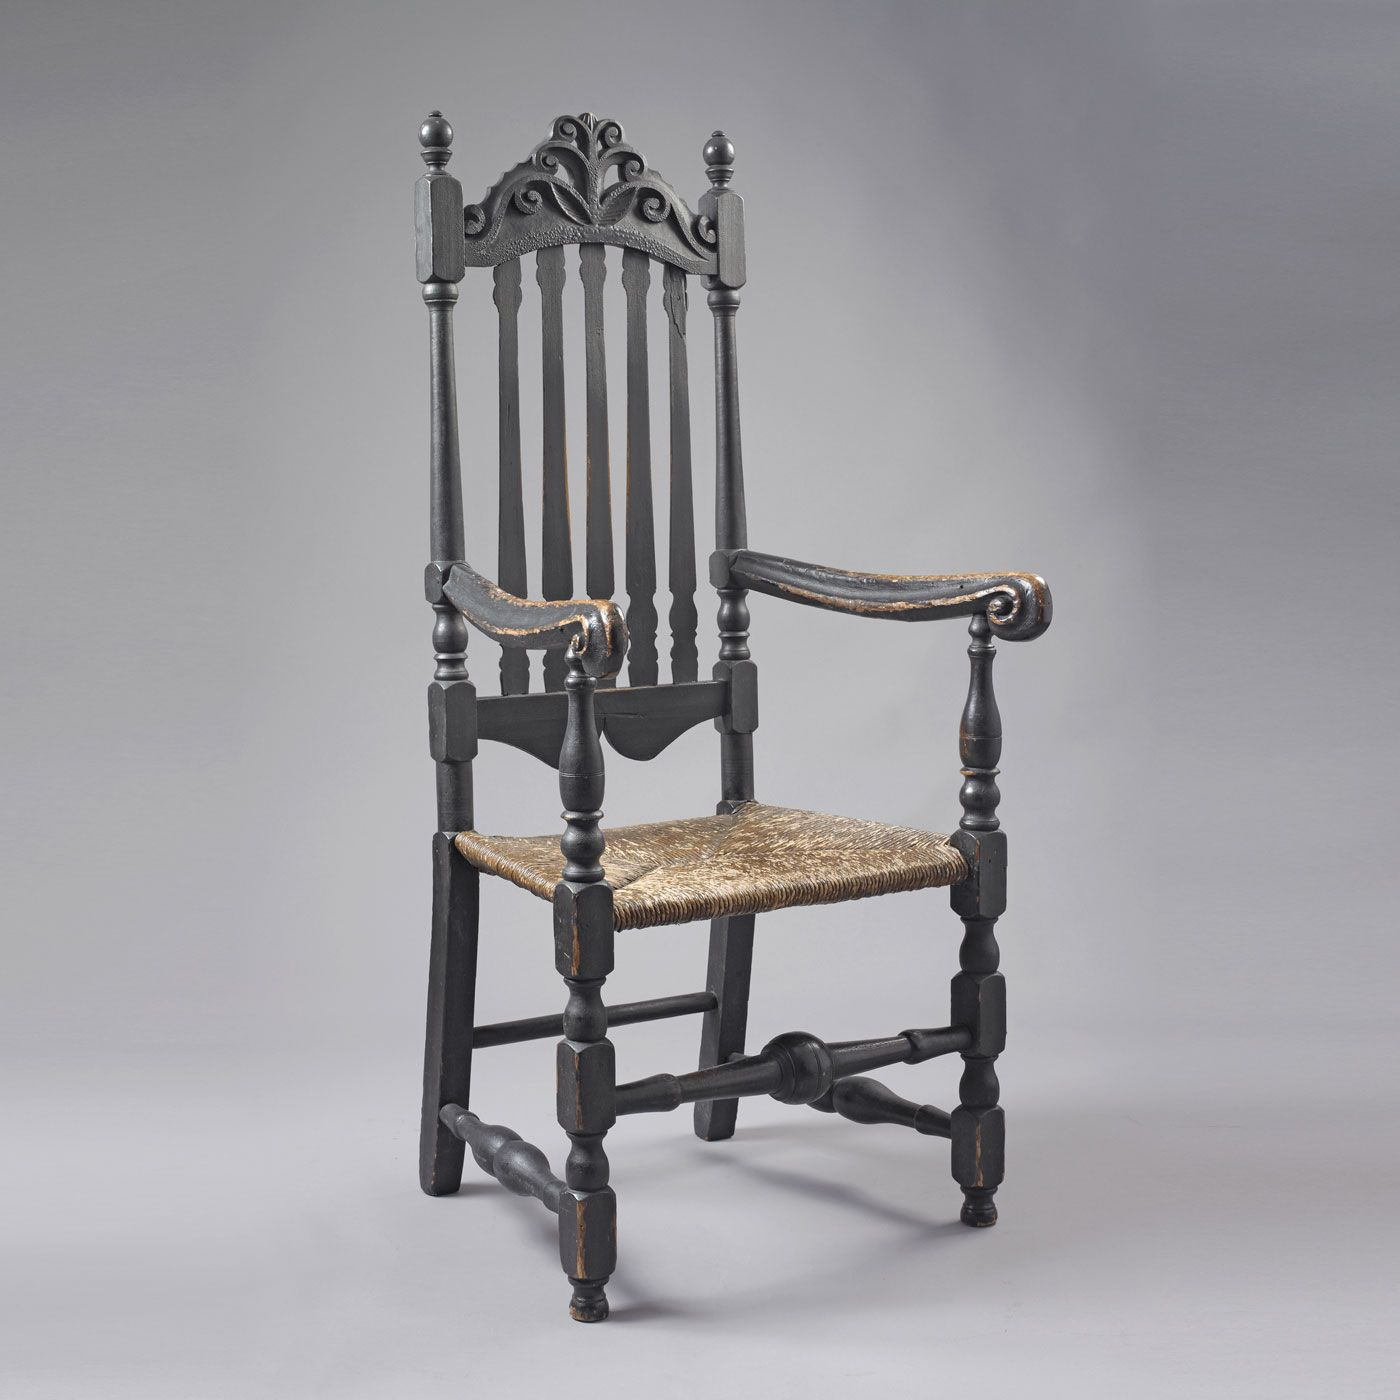 rocking chair antique styles world market wicker cushions william and mary furniture